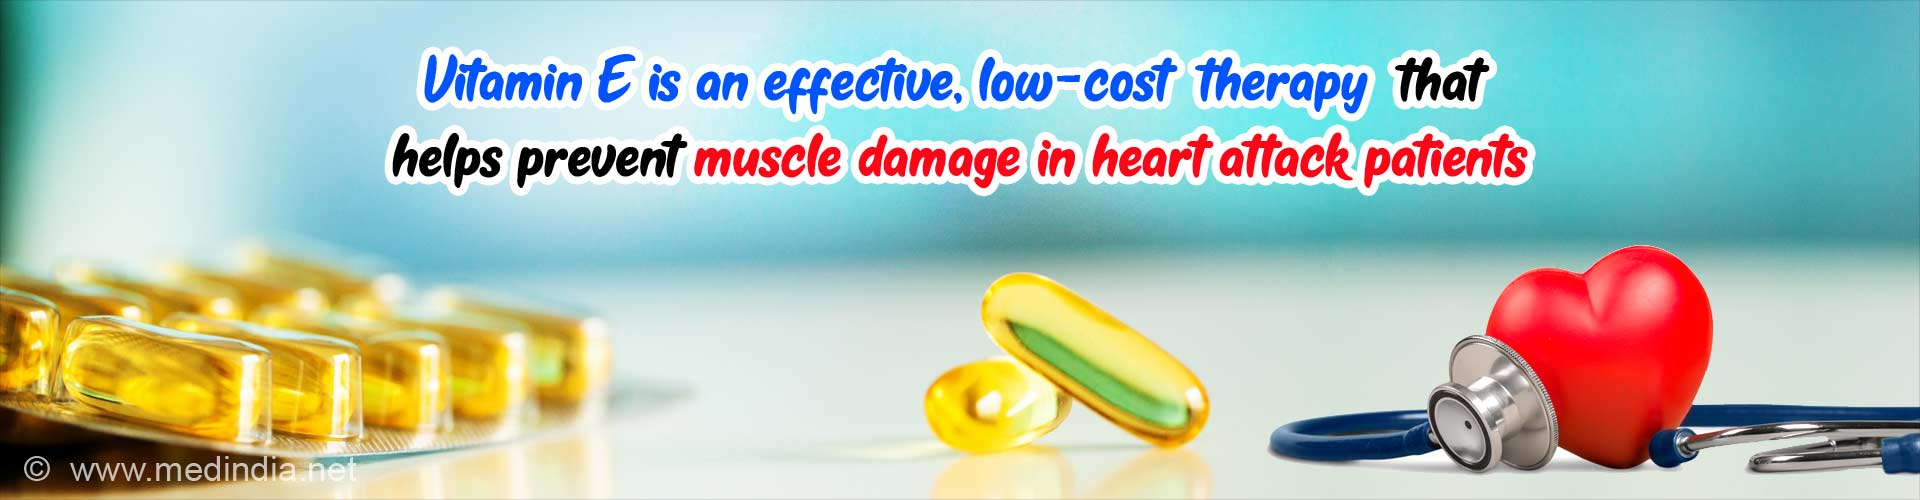 Vitamin E is an effective, low-cost therapy that helps prevent muscle damage in heart attack patients.